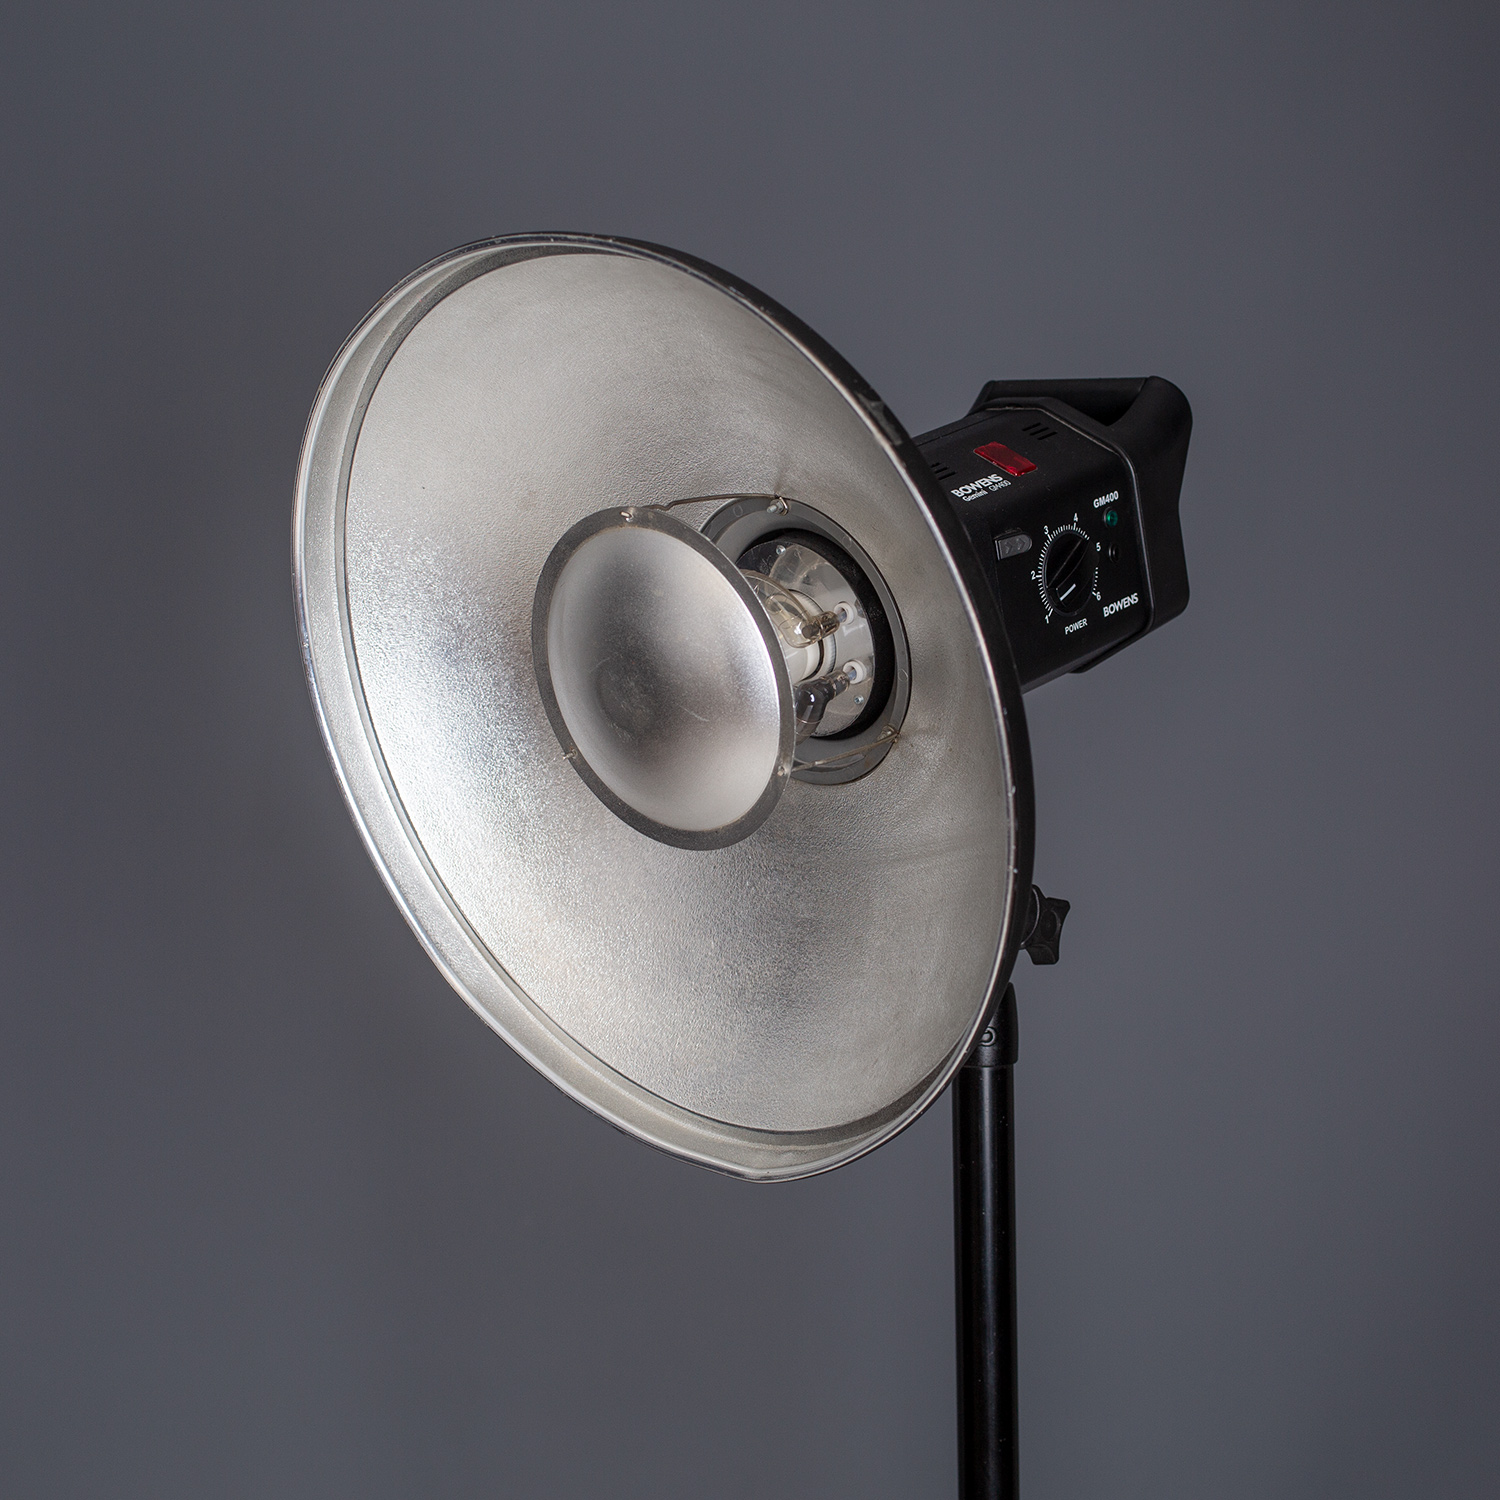 What Size Beauty Dish is Right For Your Portrait Photography?